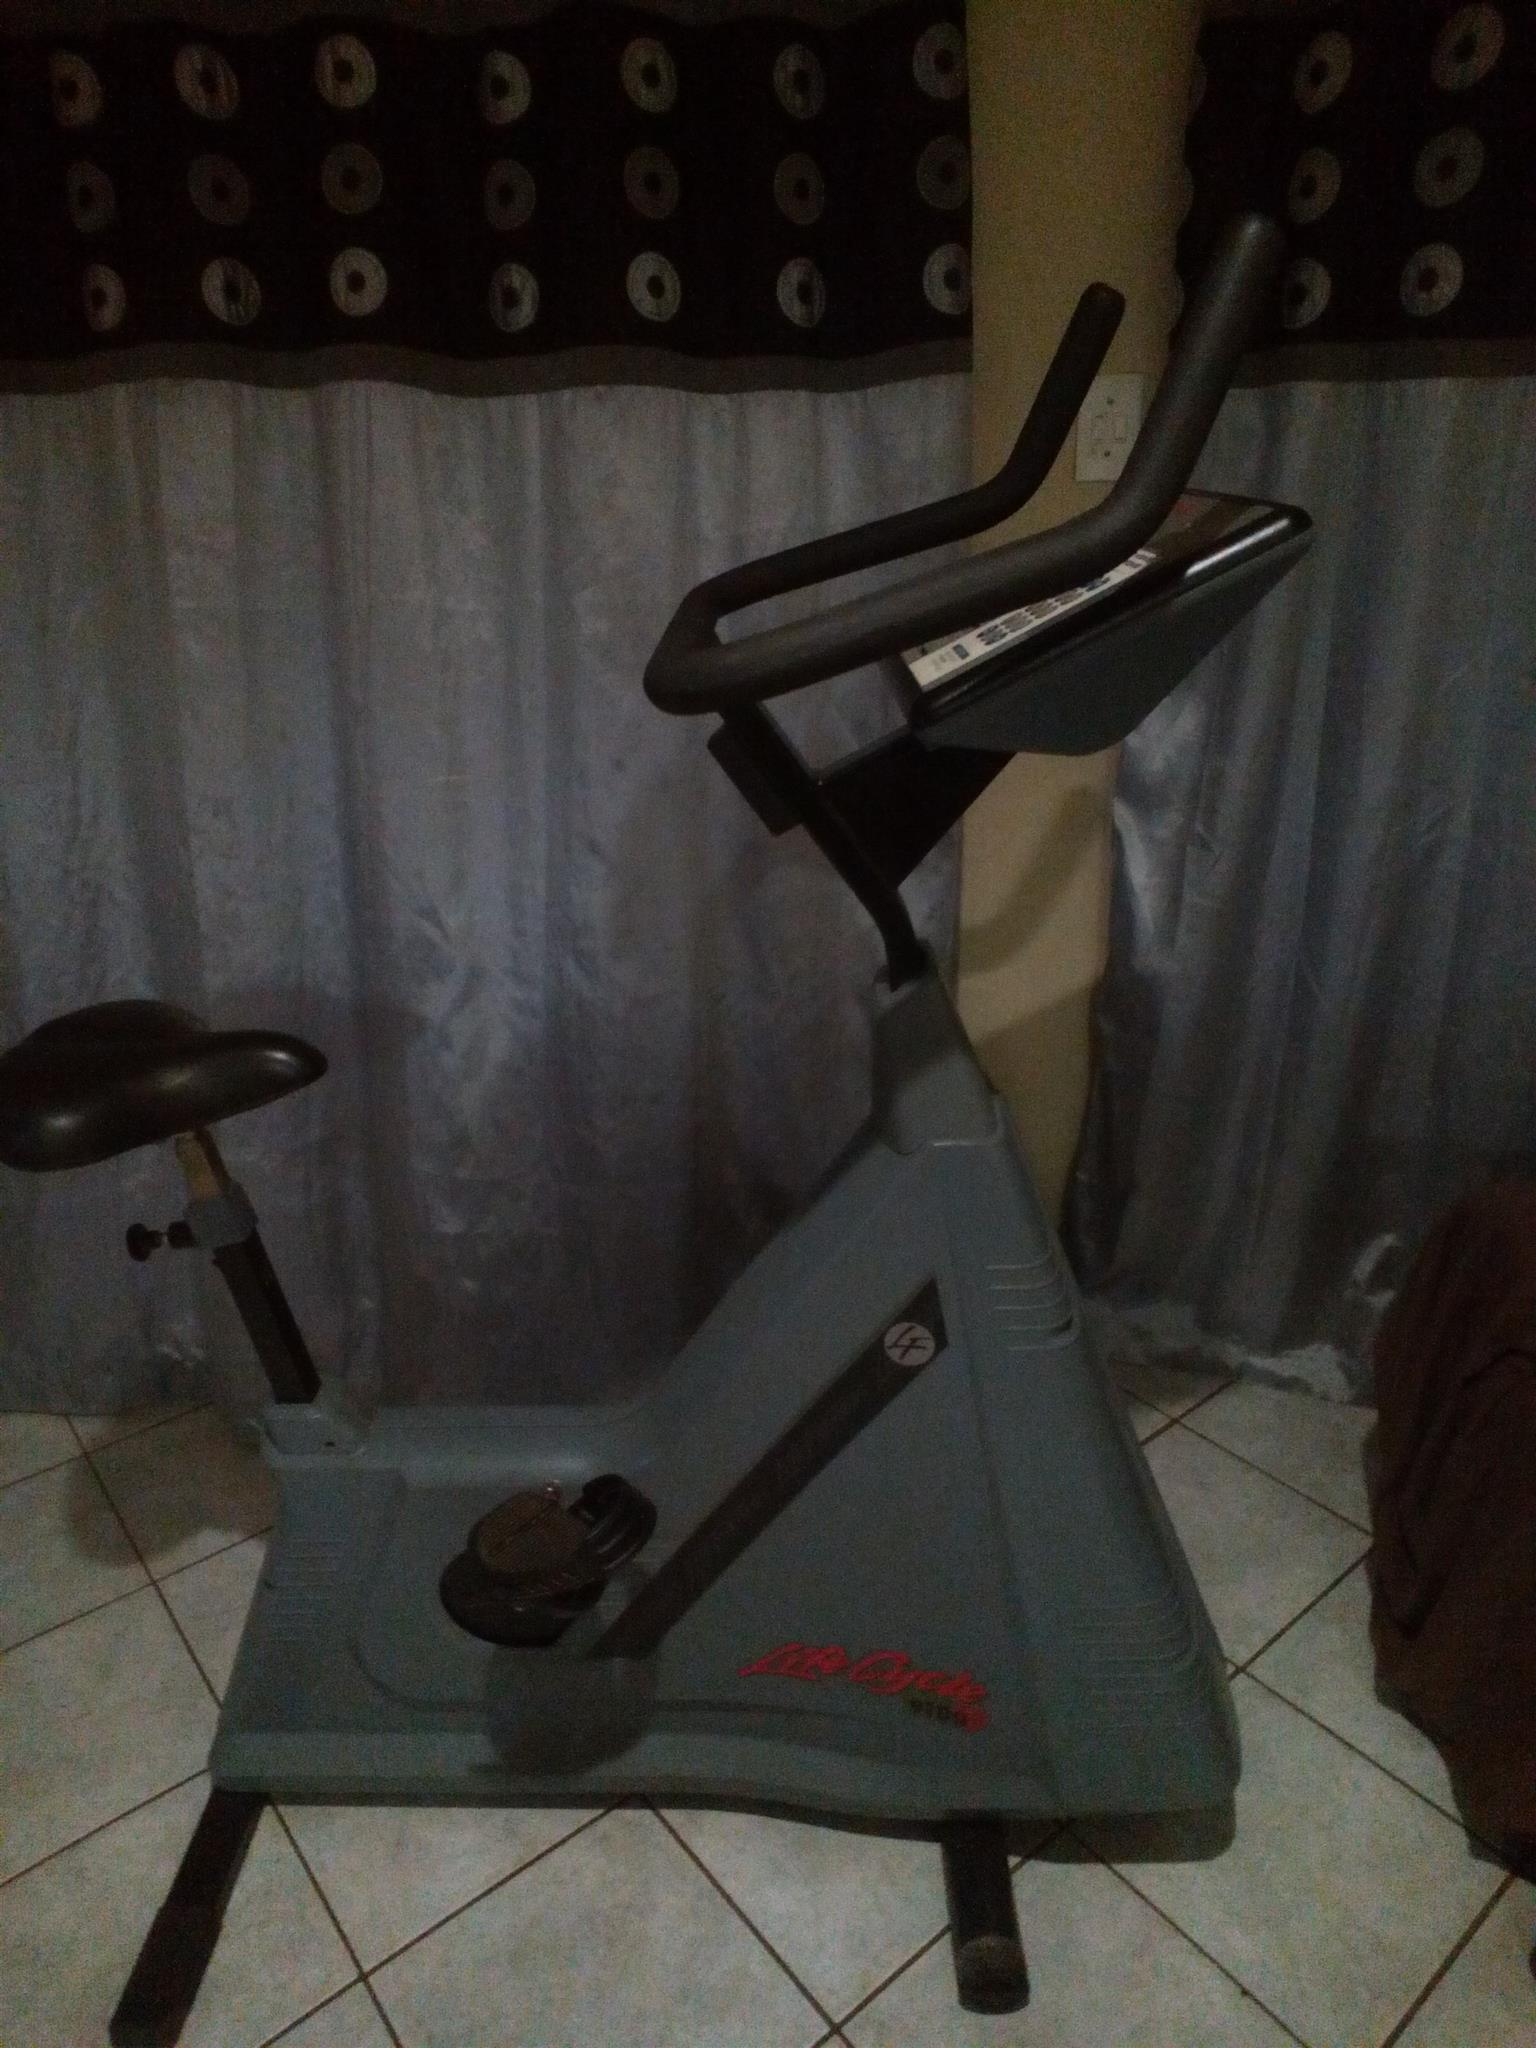 commercial exercise bike, lots of programs and settings